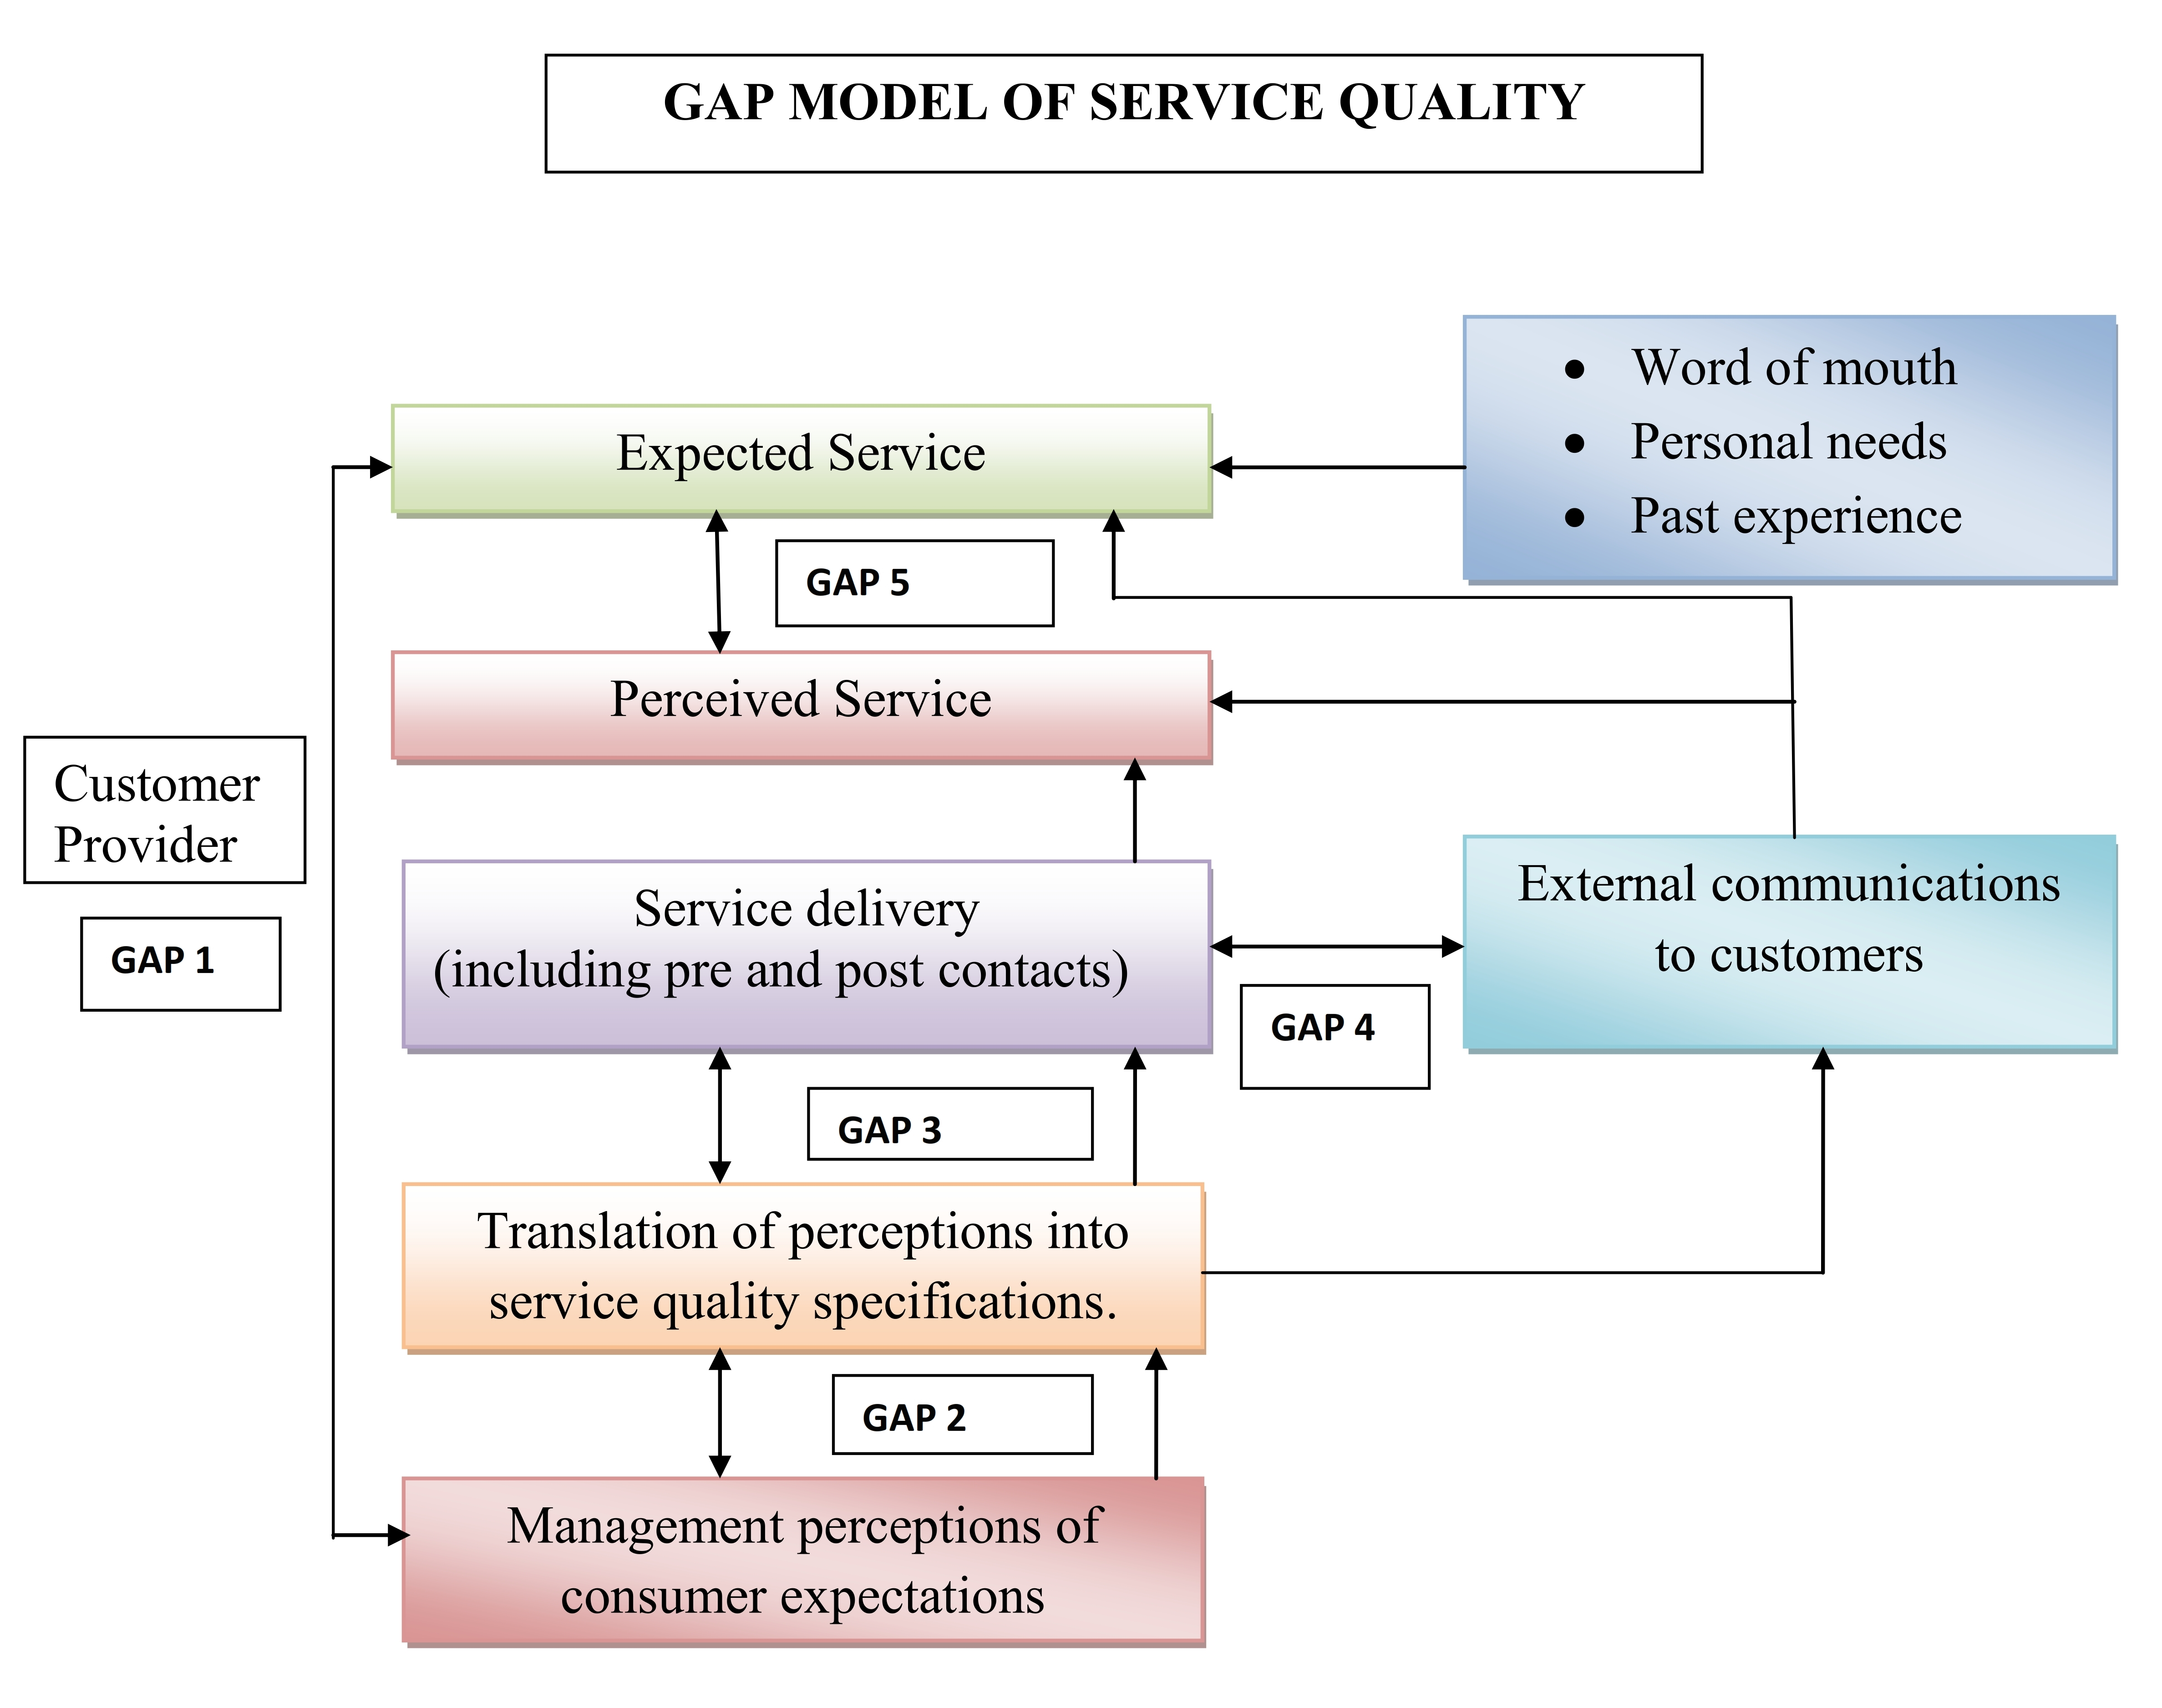 gaps in service quality process for An identification of customers' critical demands through evaluating and prioritizing service quality dimensions (sqds) based on service quality (sq) gap analysis with analytic network process suggests that security and confidentiality, price, and tangibles are the most crucial factors.